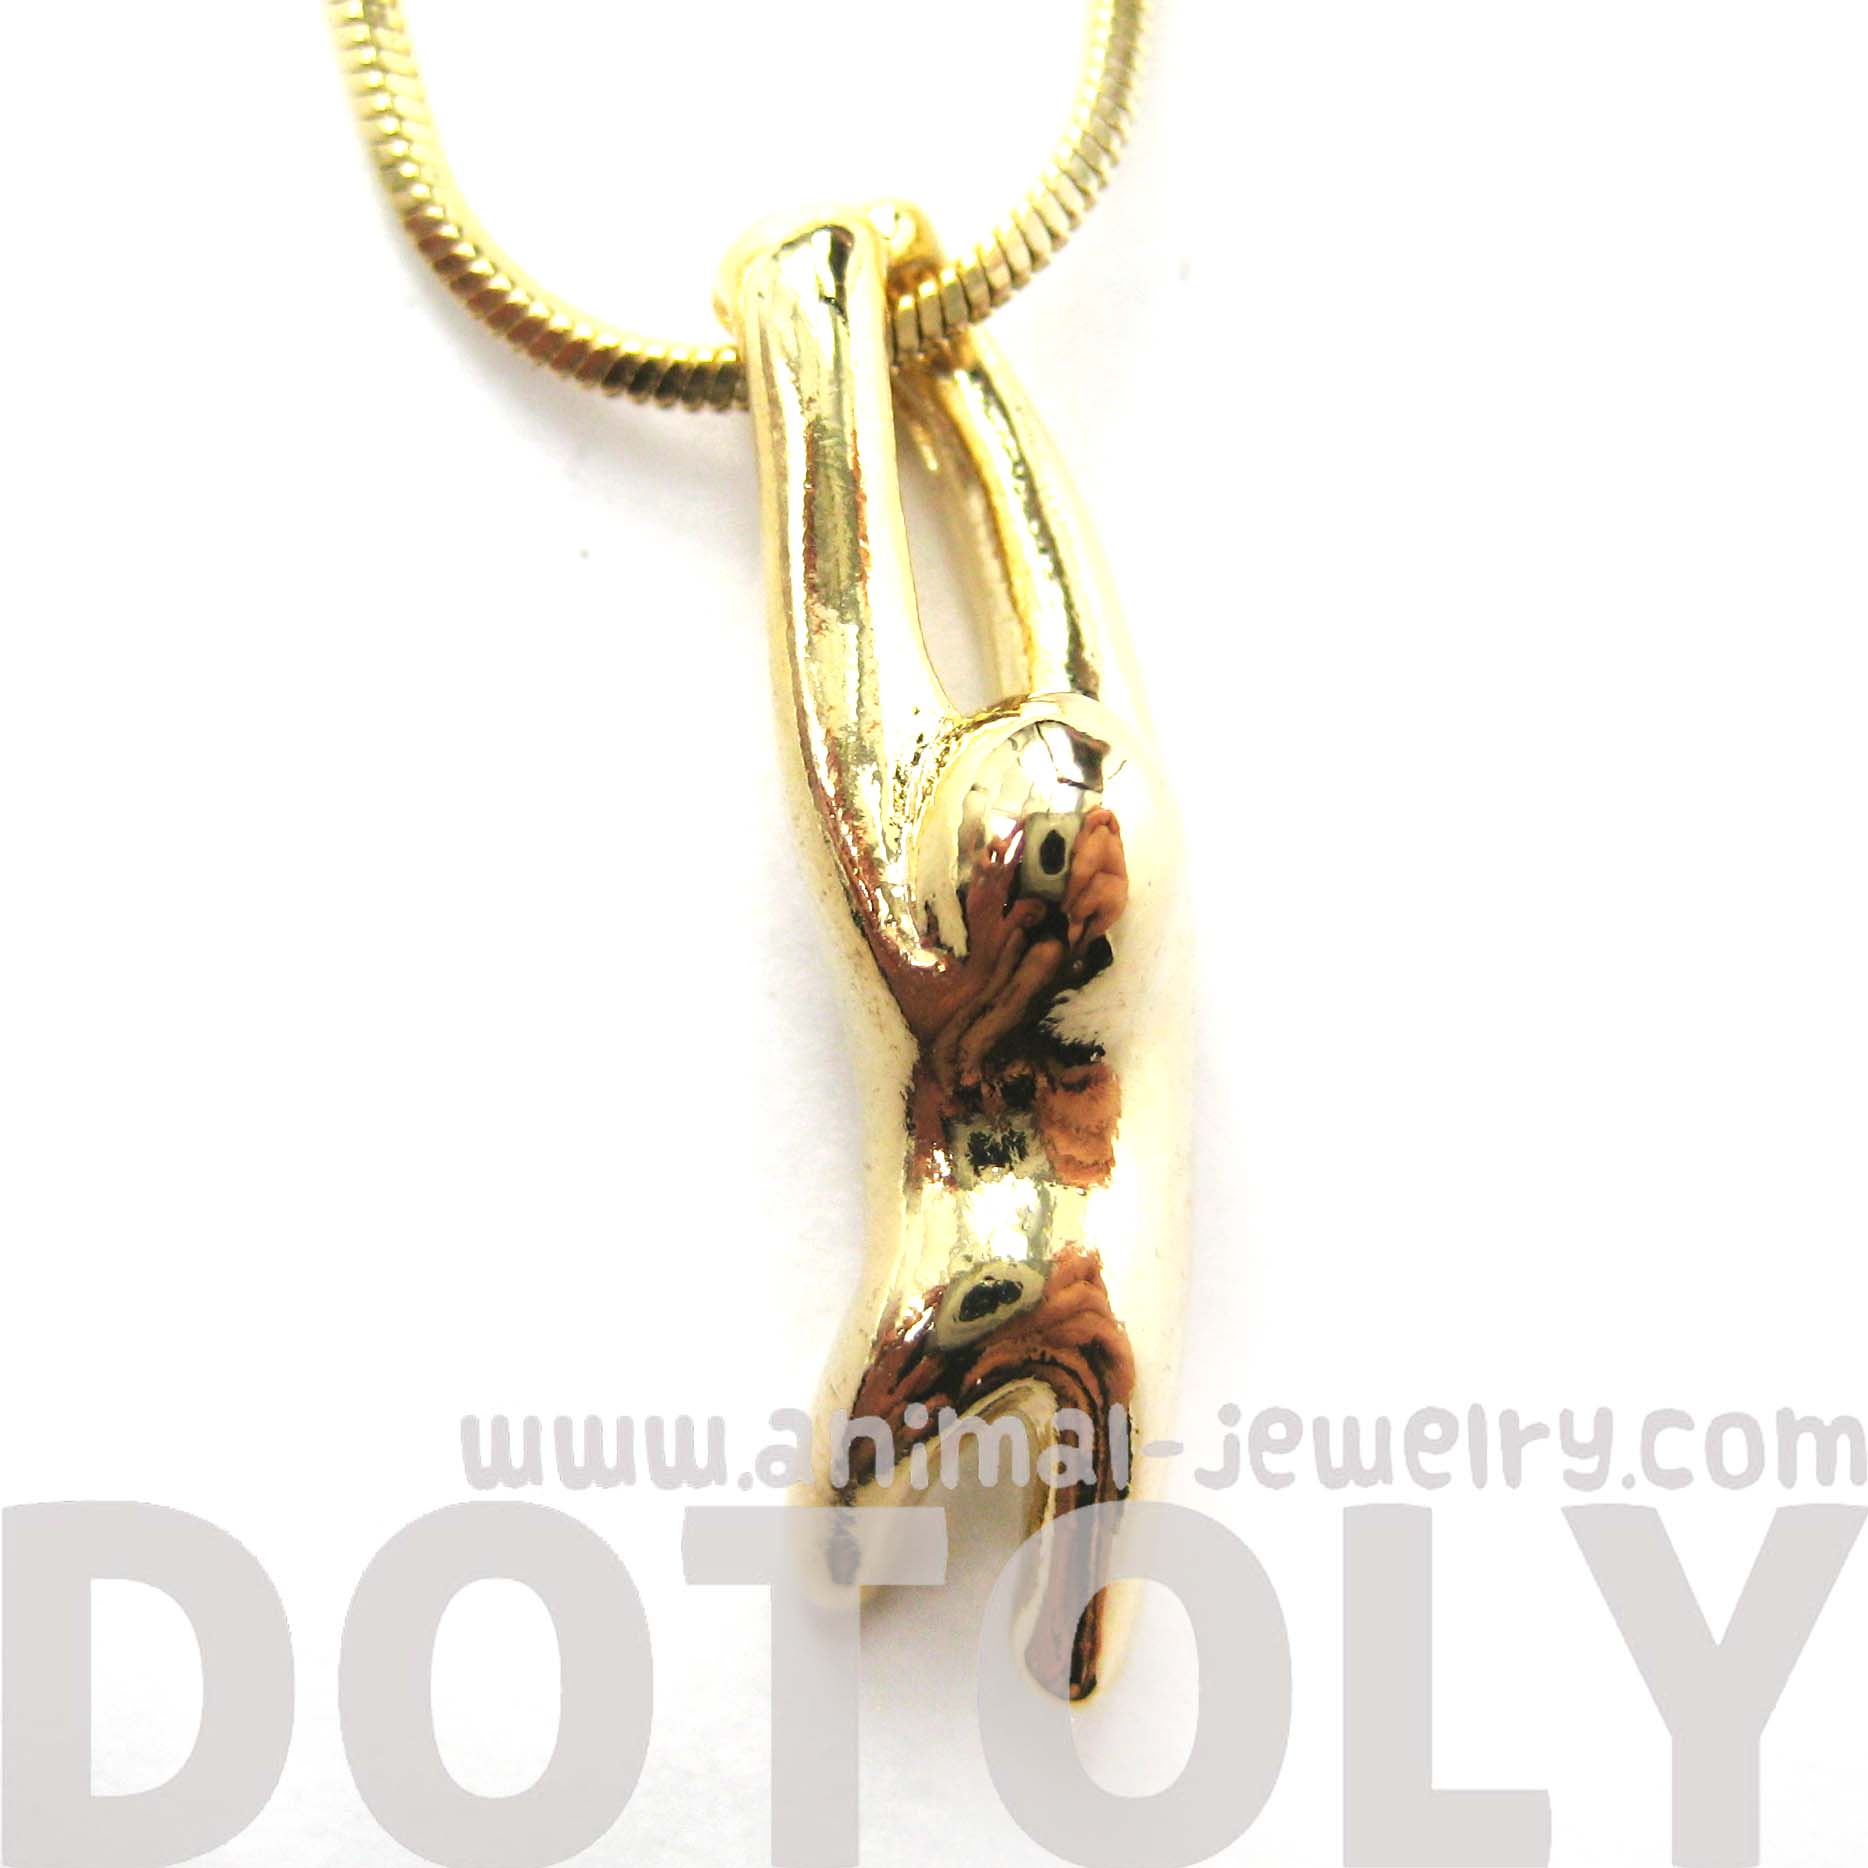 il en baby sloth cute zoom listing pendant necklace dk jewelry fullxfull